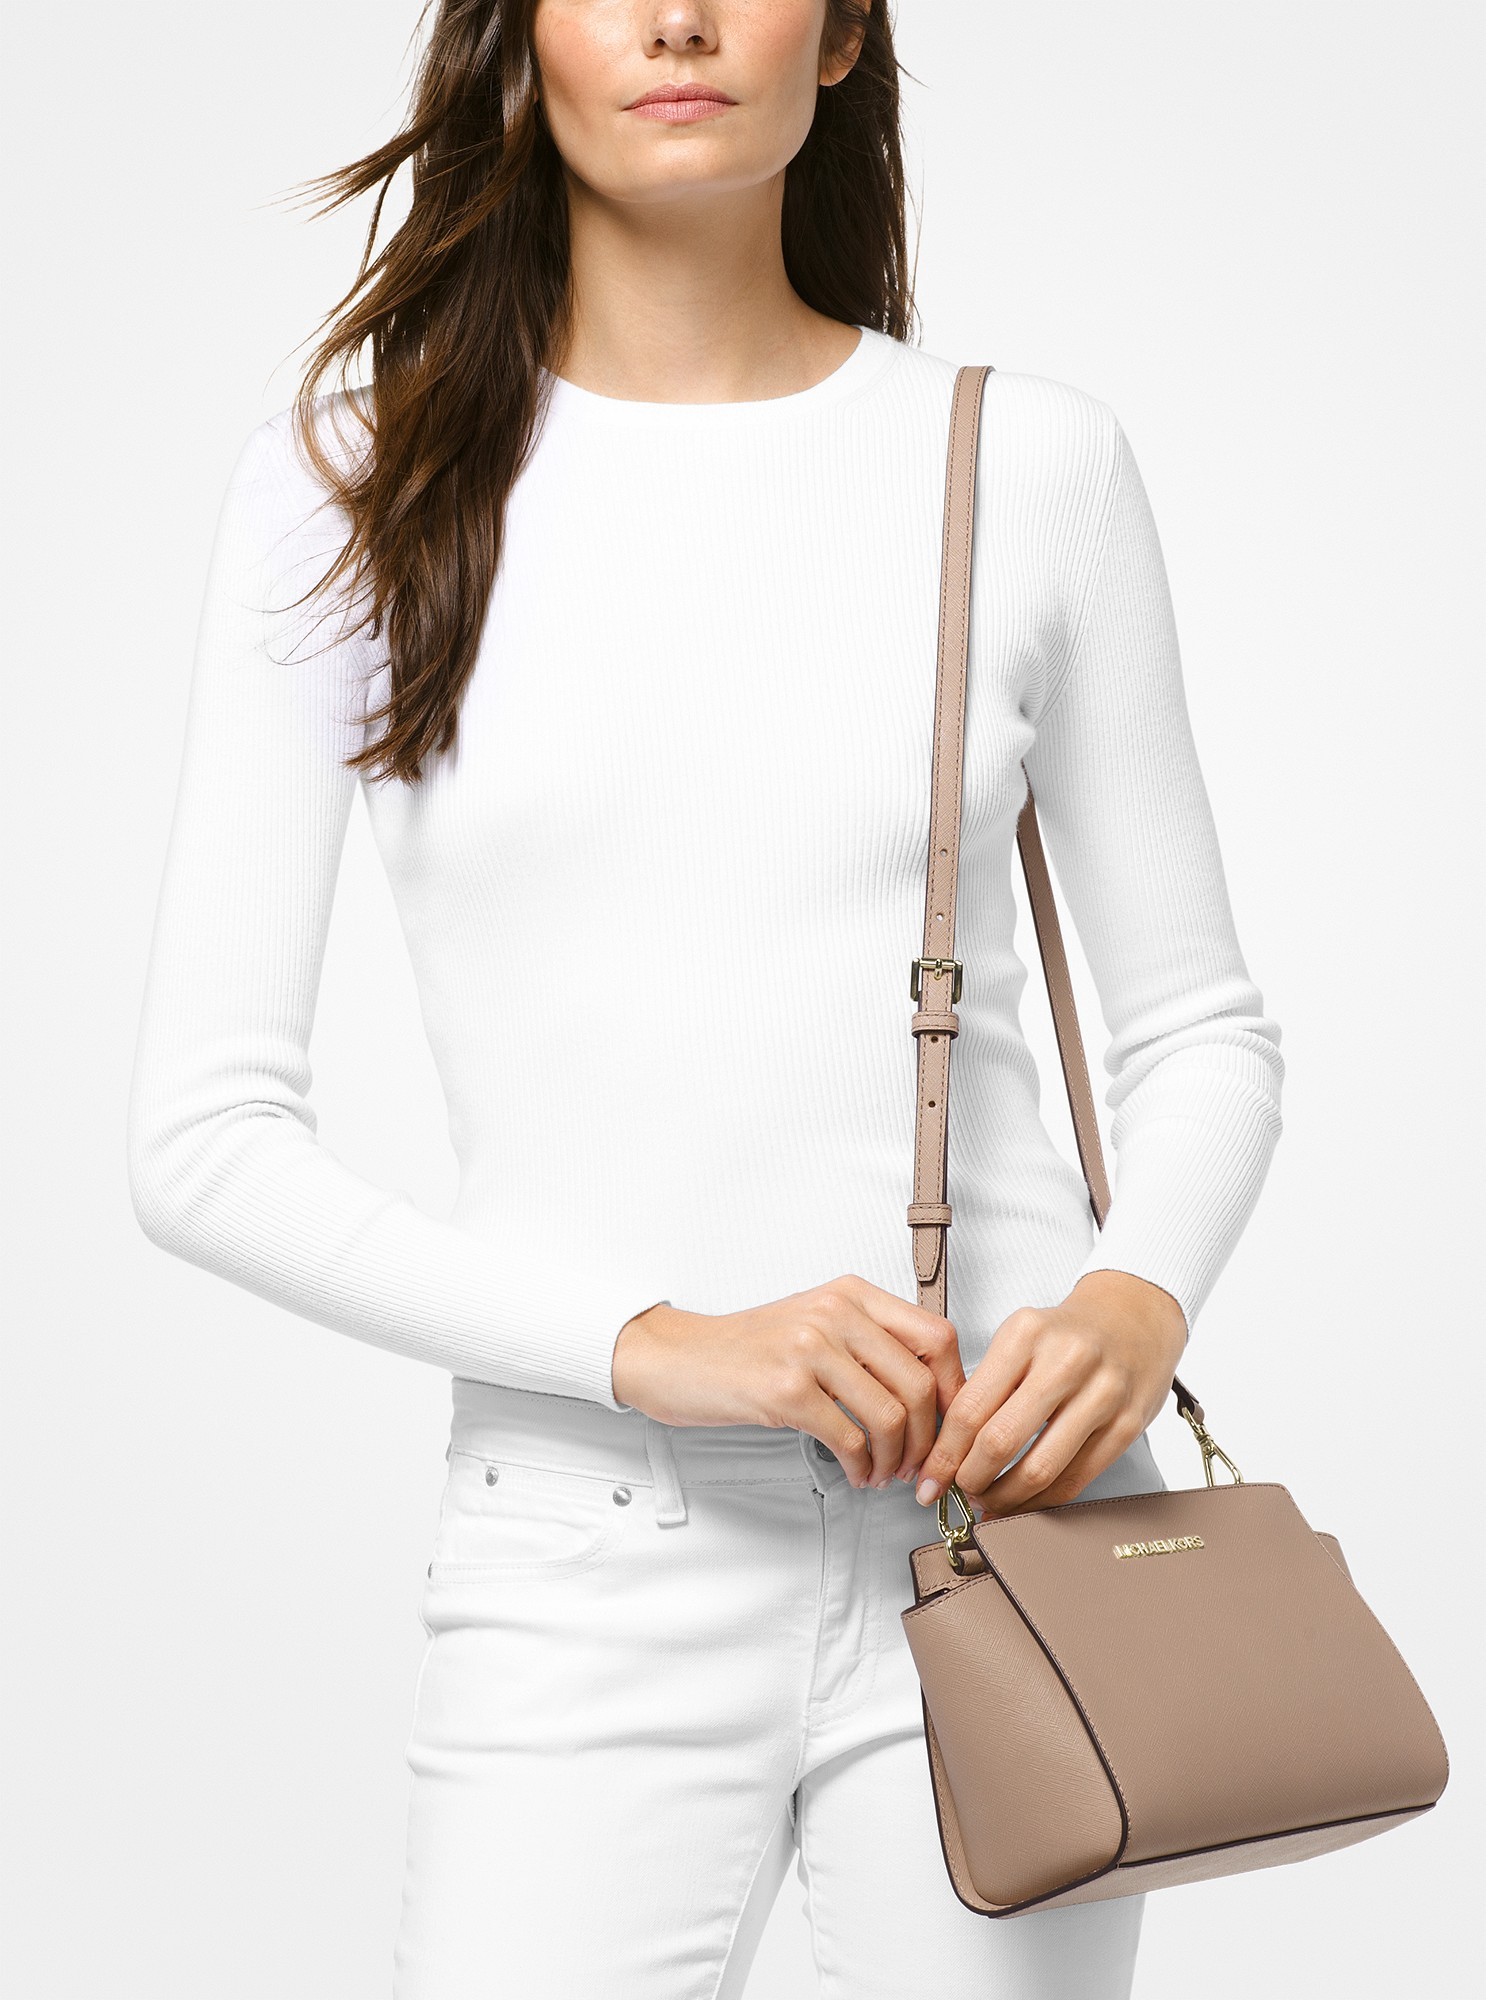 d4b3fa25896ab6 Michael Kors Selma Medium Saffiano Leather Messenger - Truffle ...